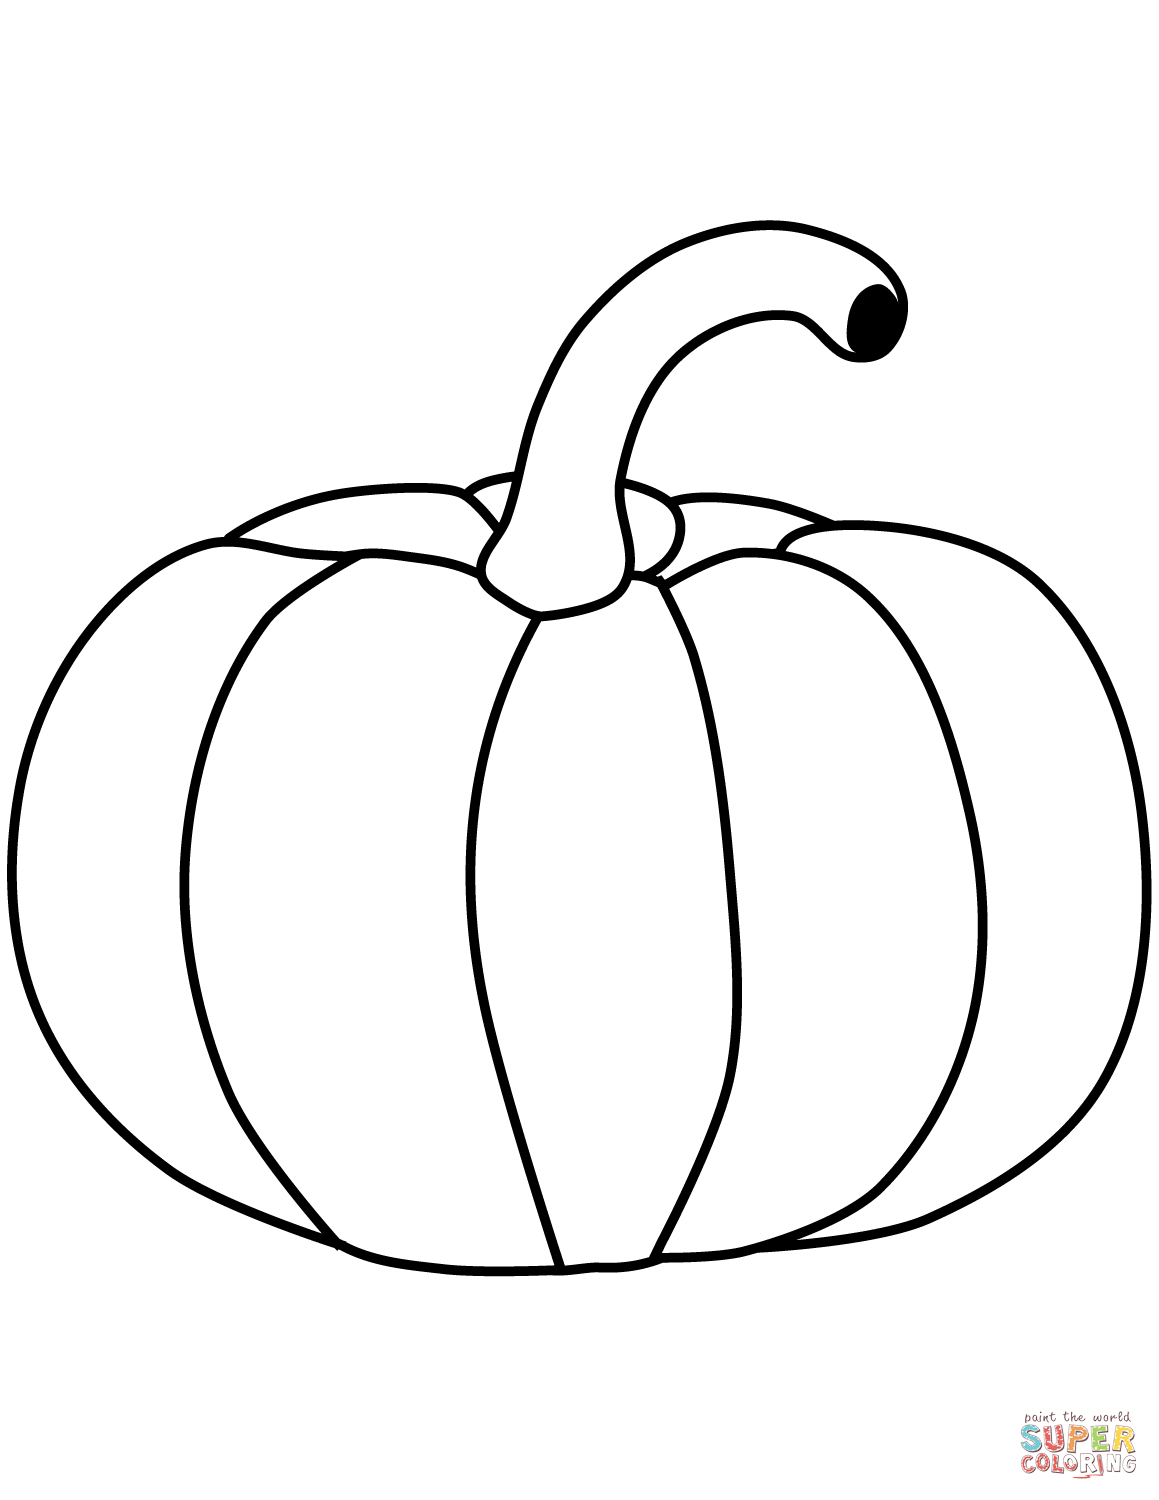 Pumpkins Coloring Pages | Free Coloring Pages - Free Printable Pumpkin Books